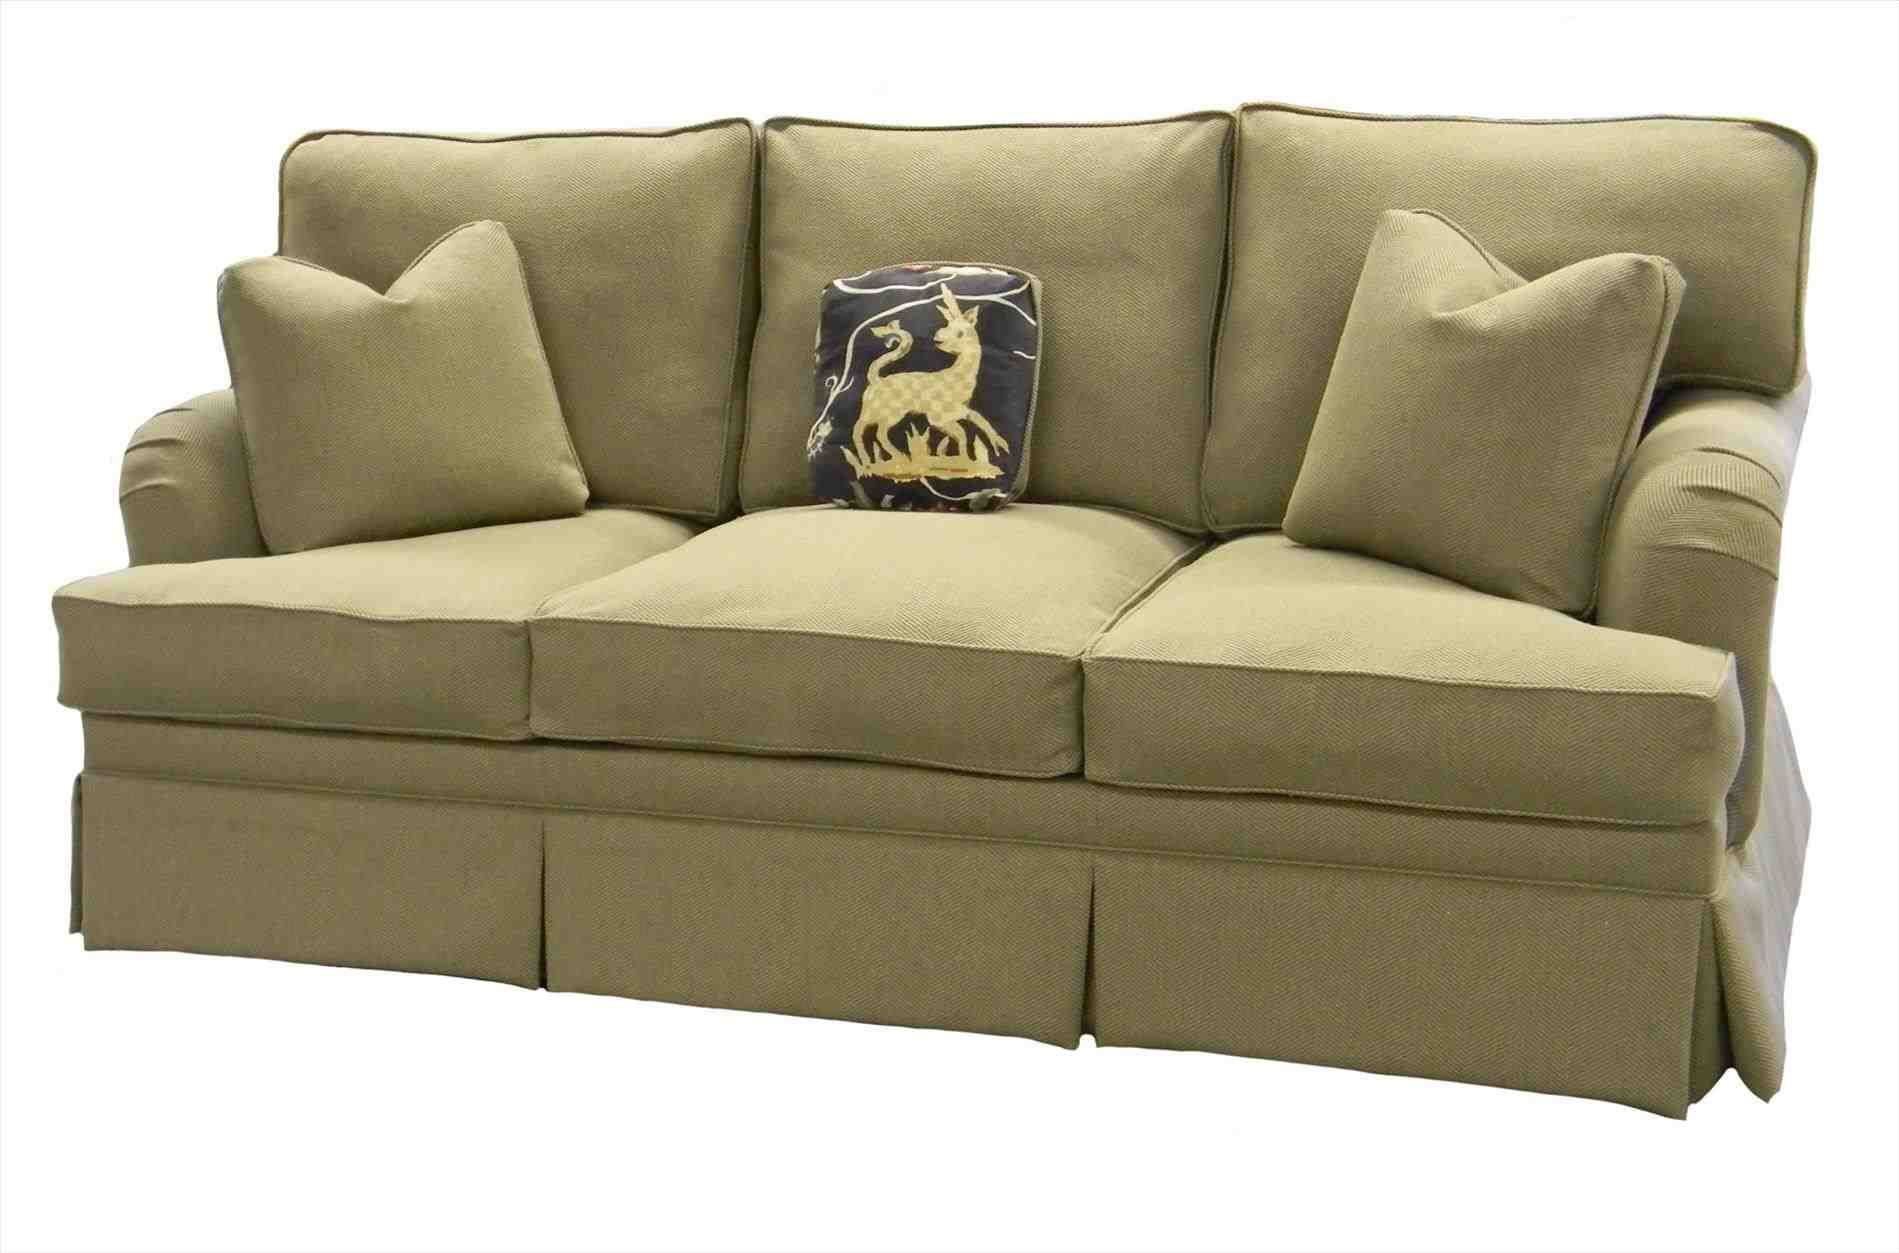 sofas twin sleeper chair ethan cheshire allen arm sleep shelter pin half a and